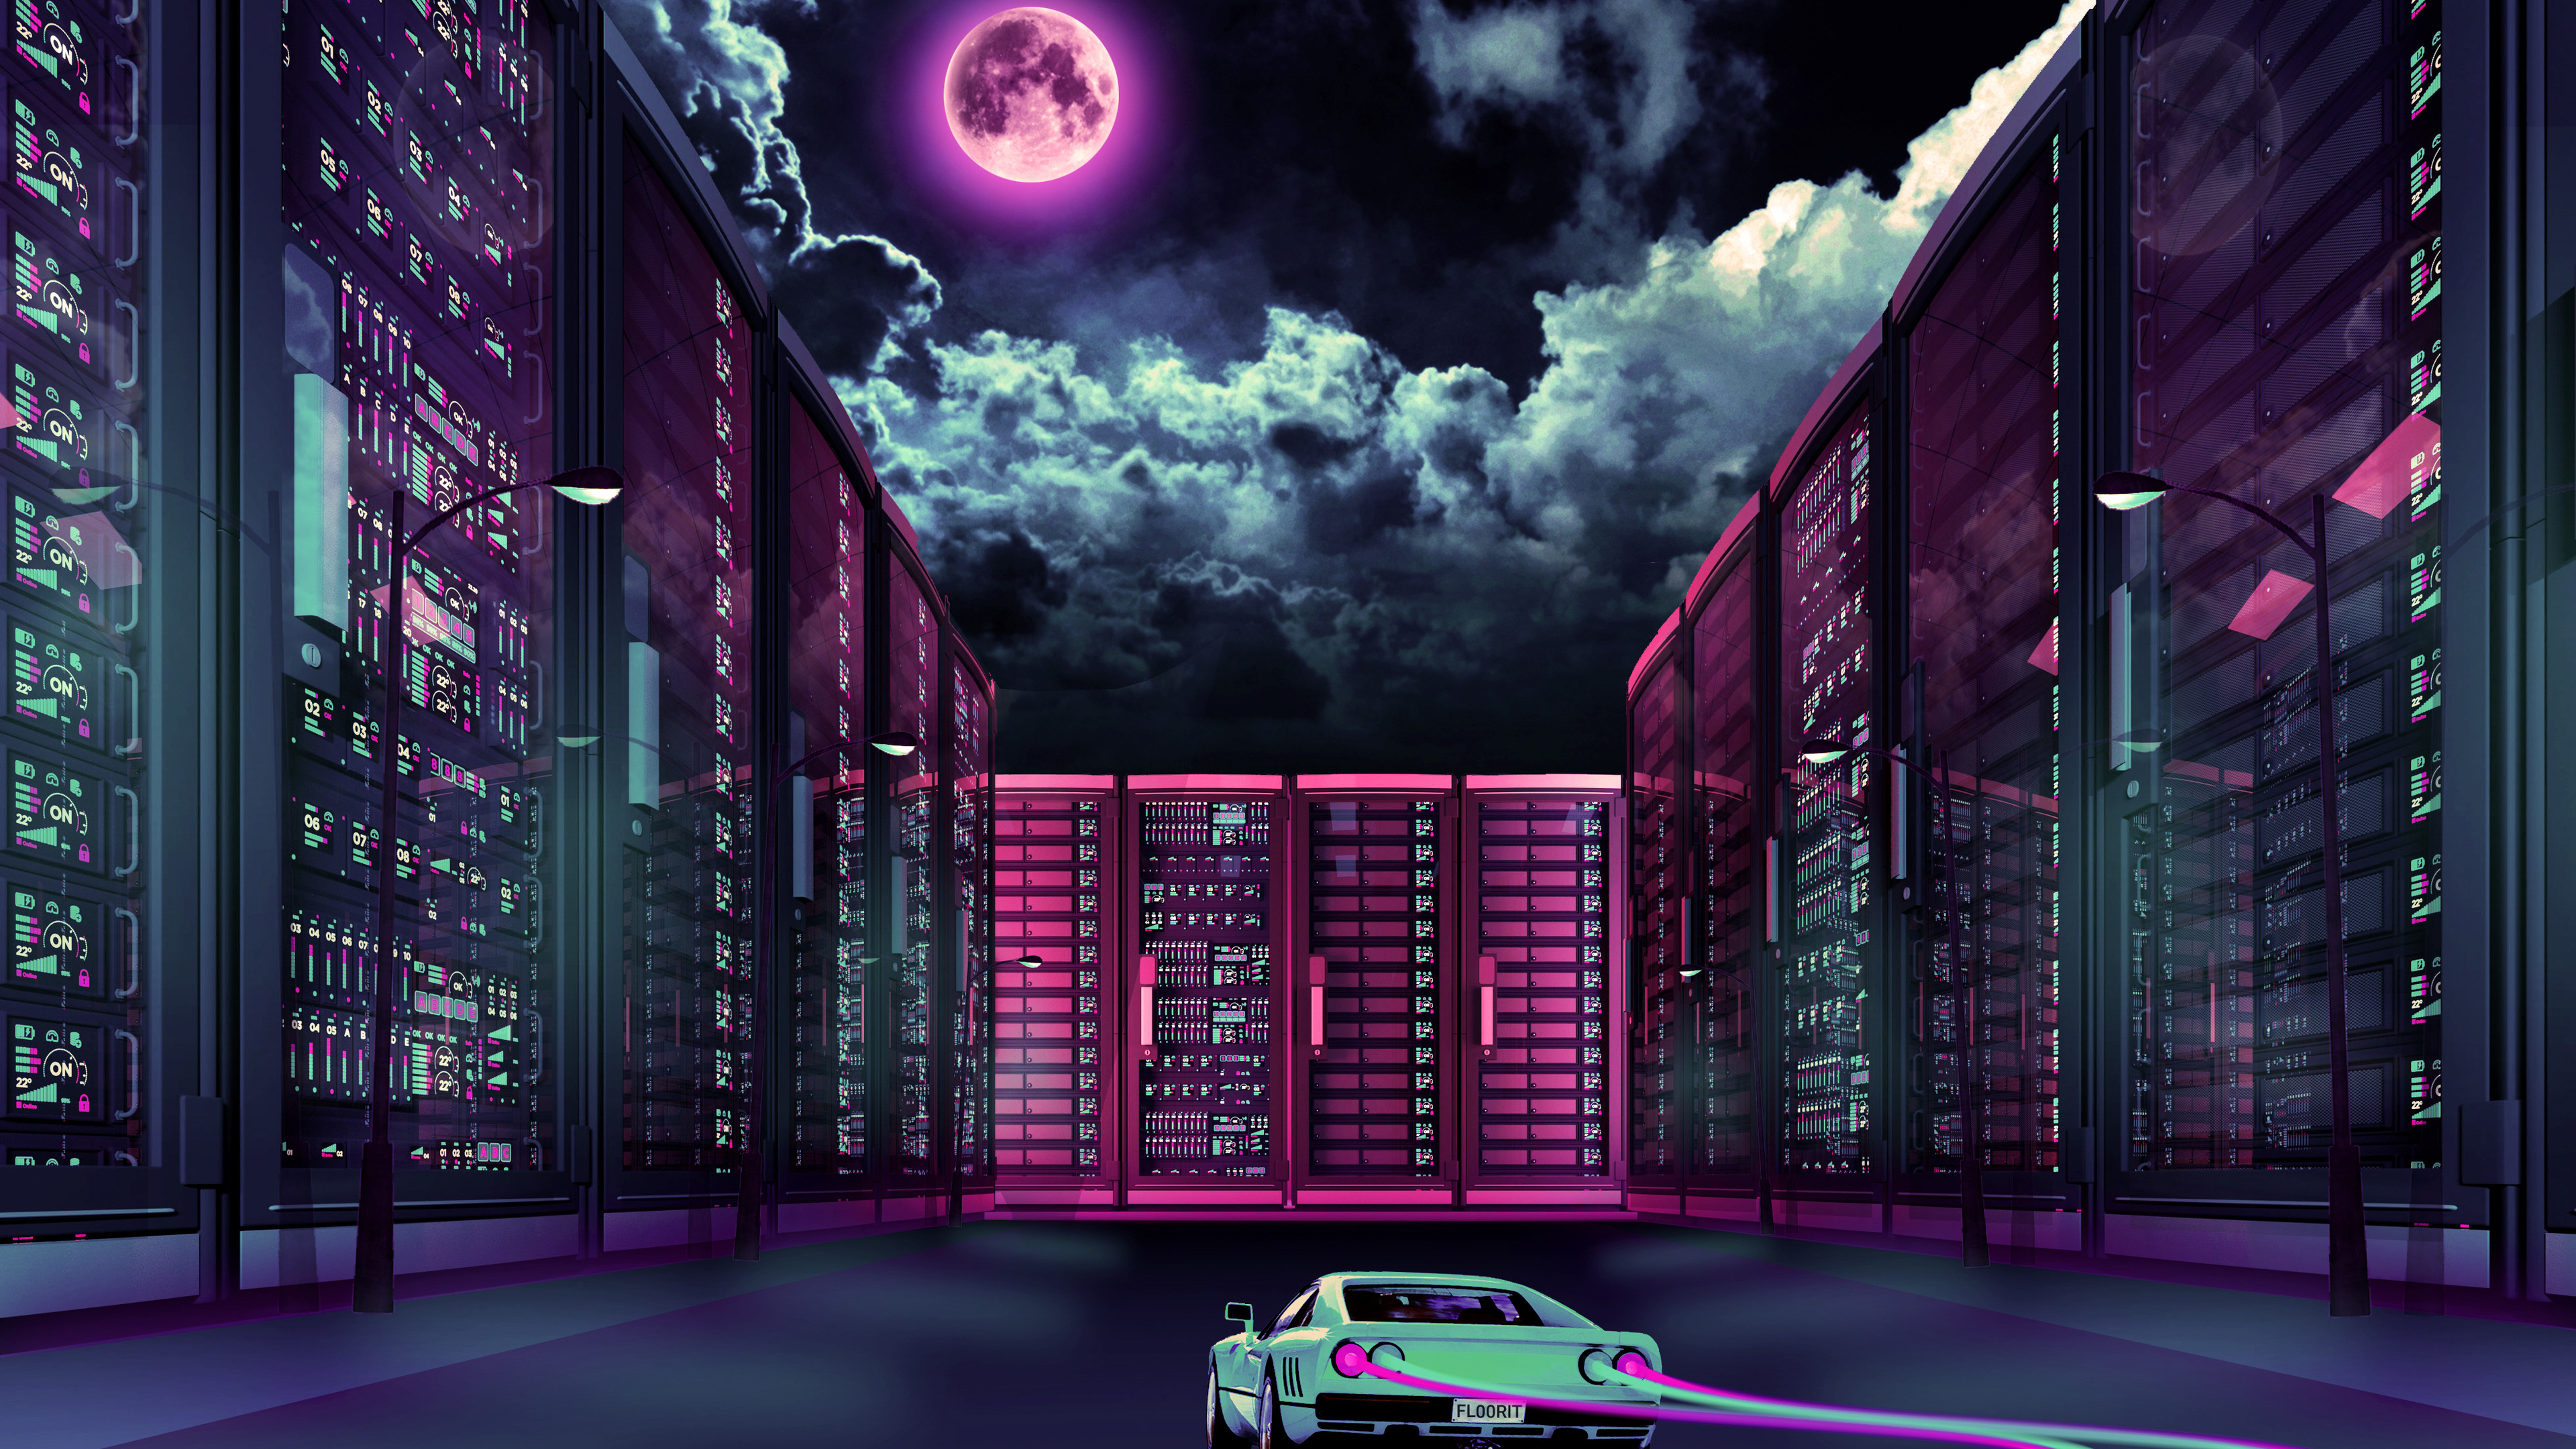 retrowave car going through city moon 1540752886 - Retrowave Car Going Through City Moon - retrowave wallpapers, hd-wallpapers, city wallpapers, car wallpapers, 4k-wallpapers